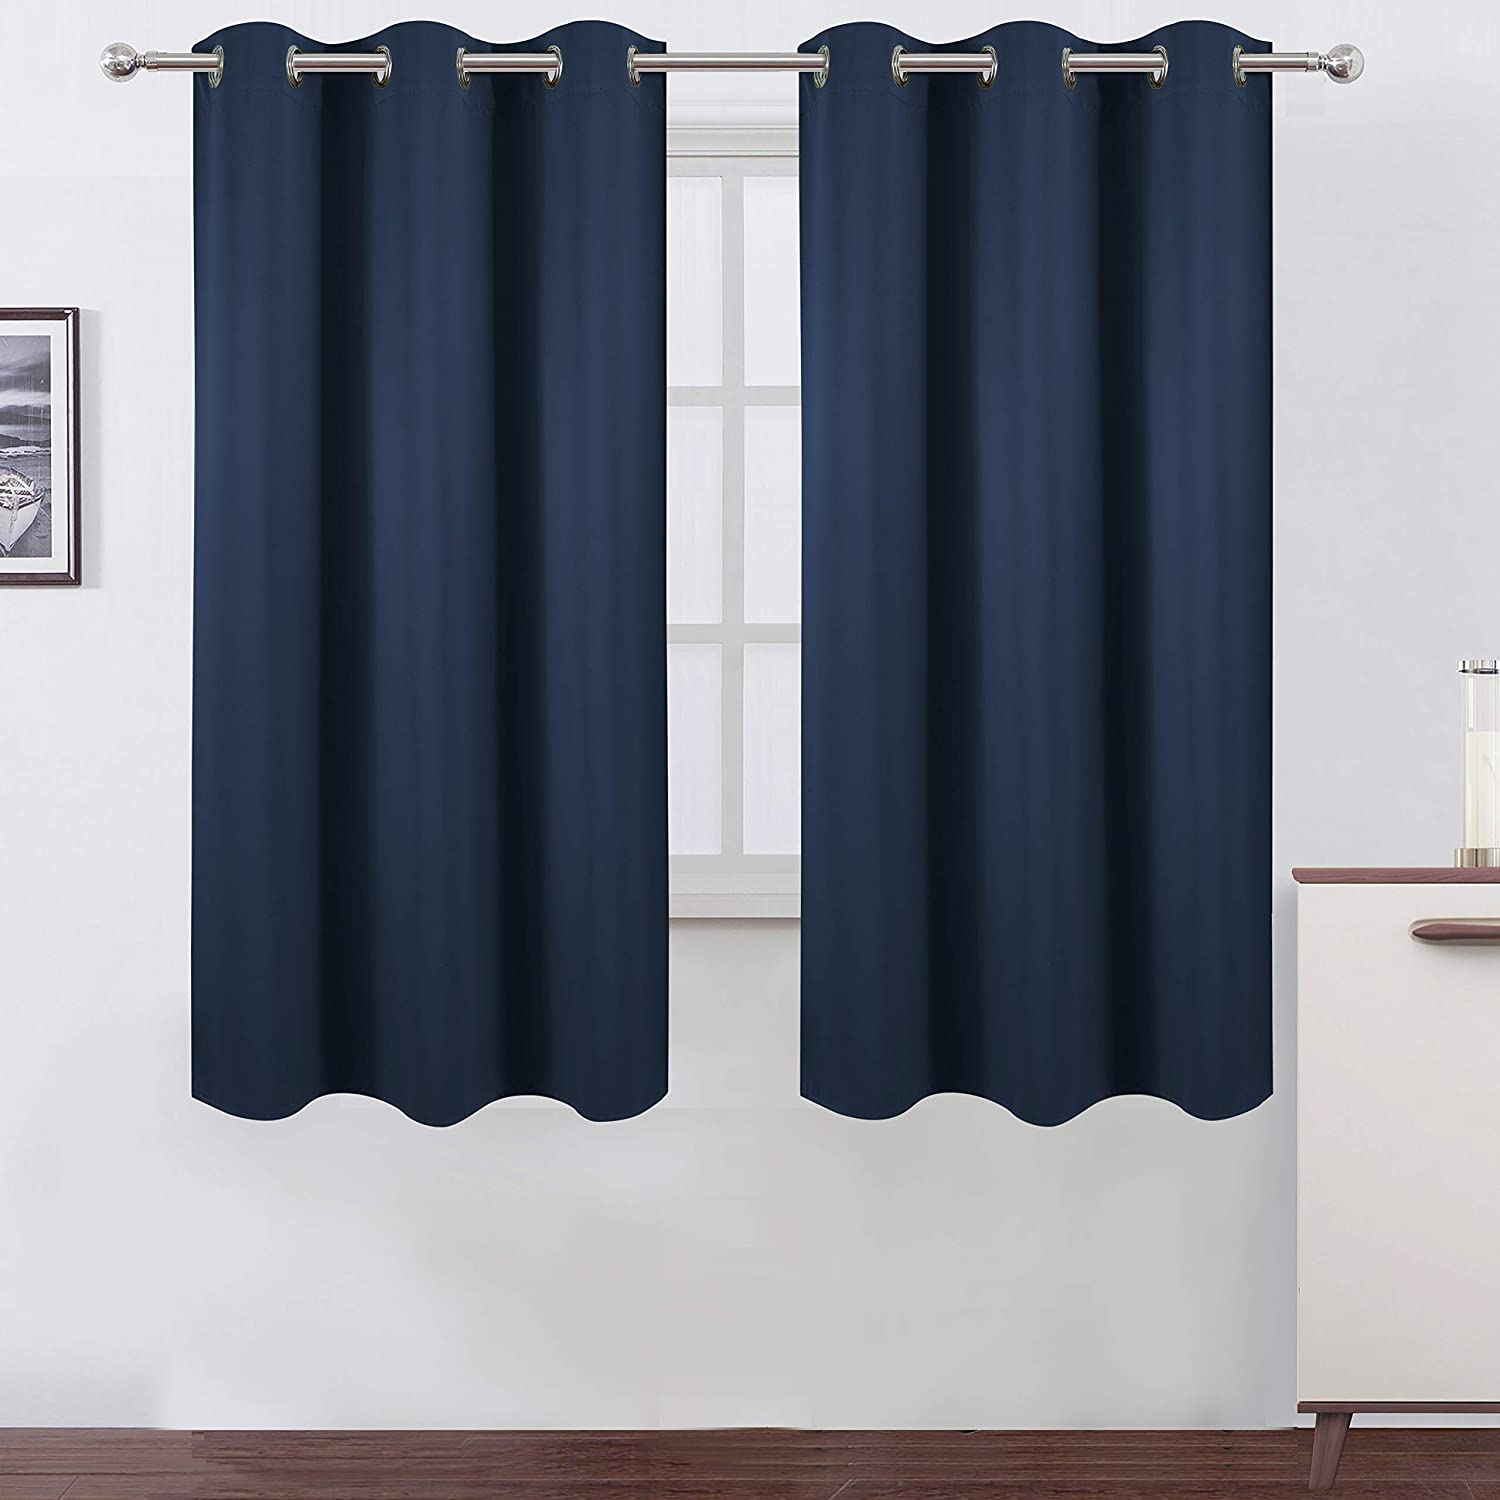 Amazon Com Lemomo Navy Blue Blackout Curtains 42 X 63 Inch Length Set Of 2 Curtain Panels Thermal Insulated Room Darkening Blackout Curtains For Bedroom Kitchen Dining